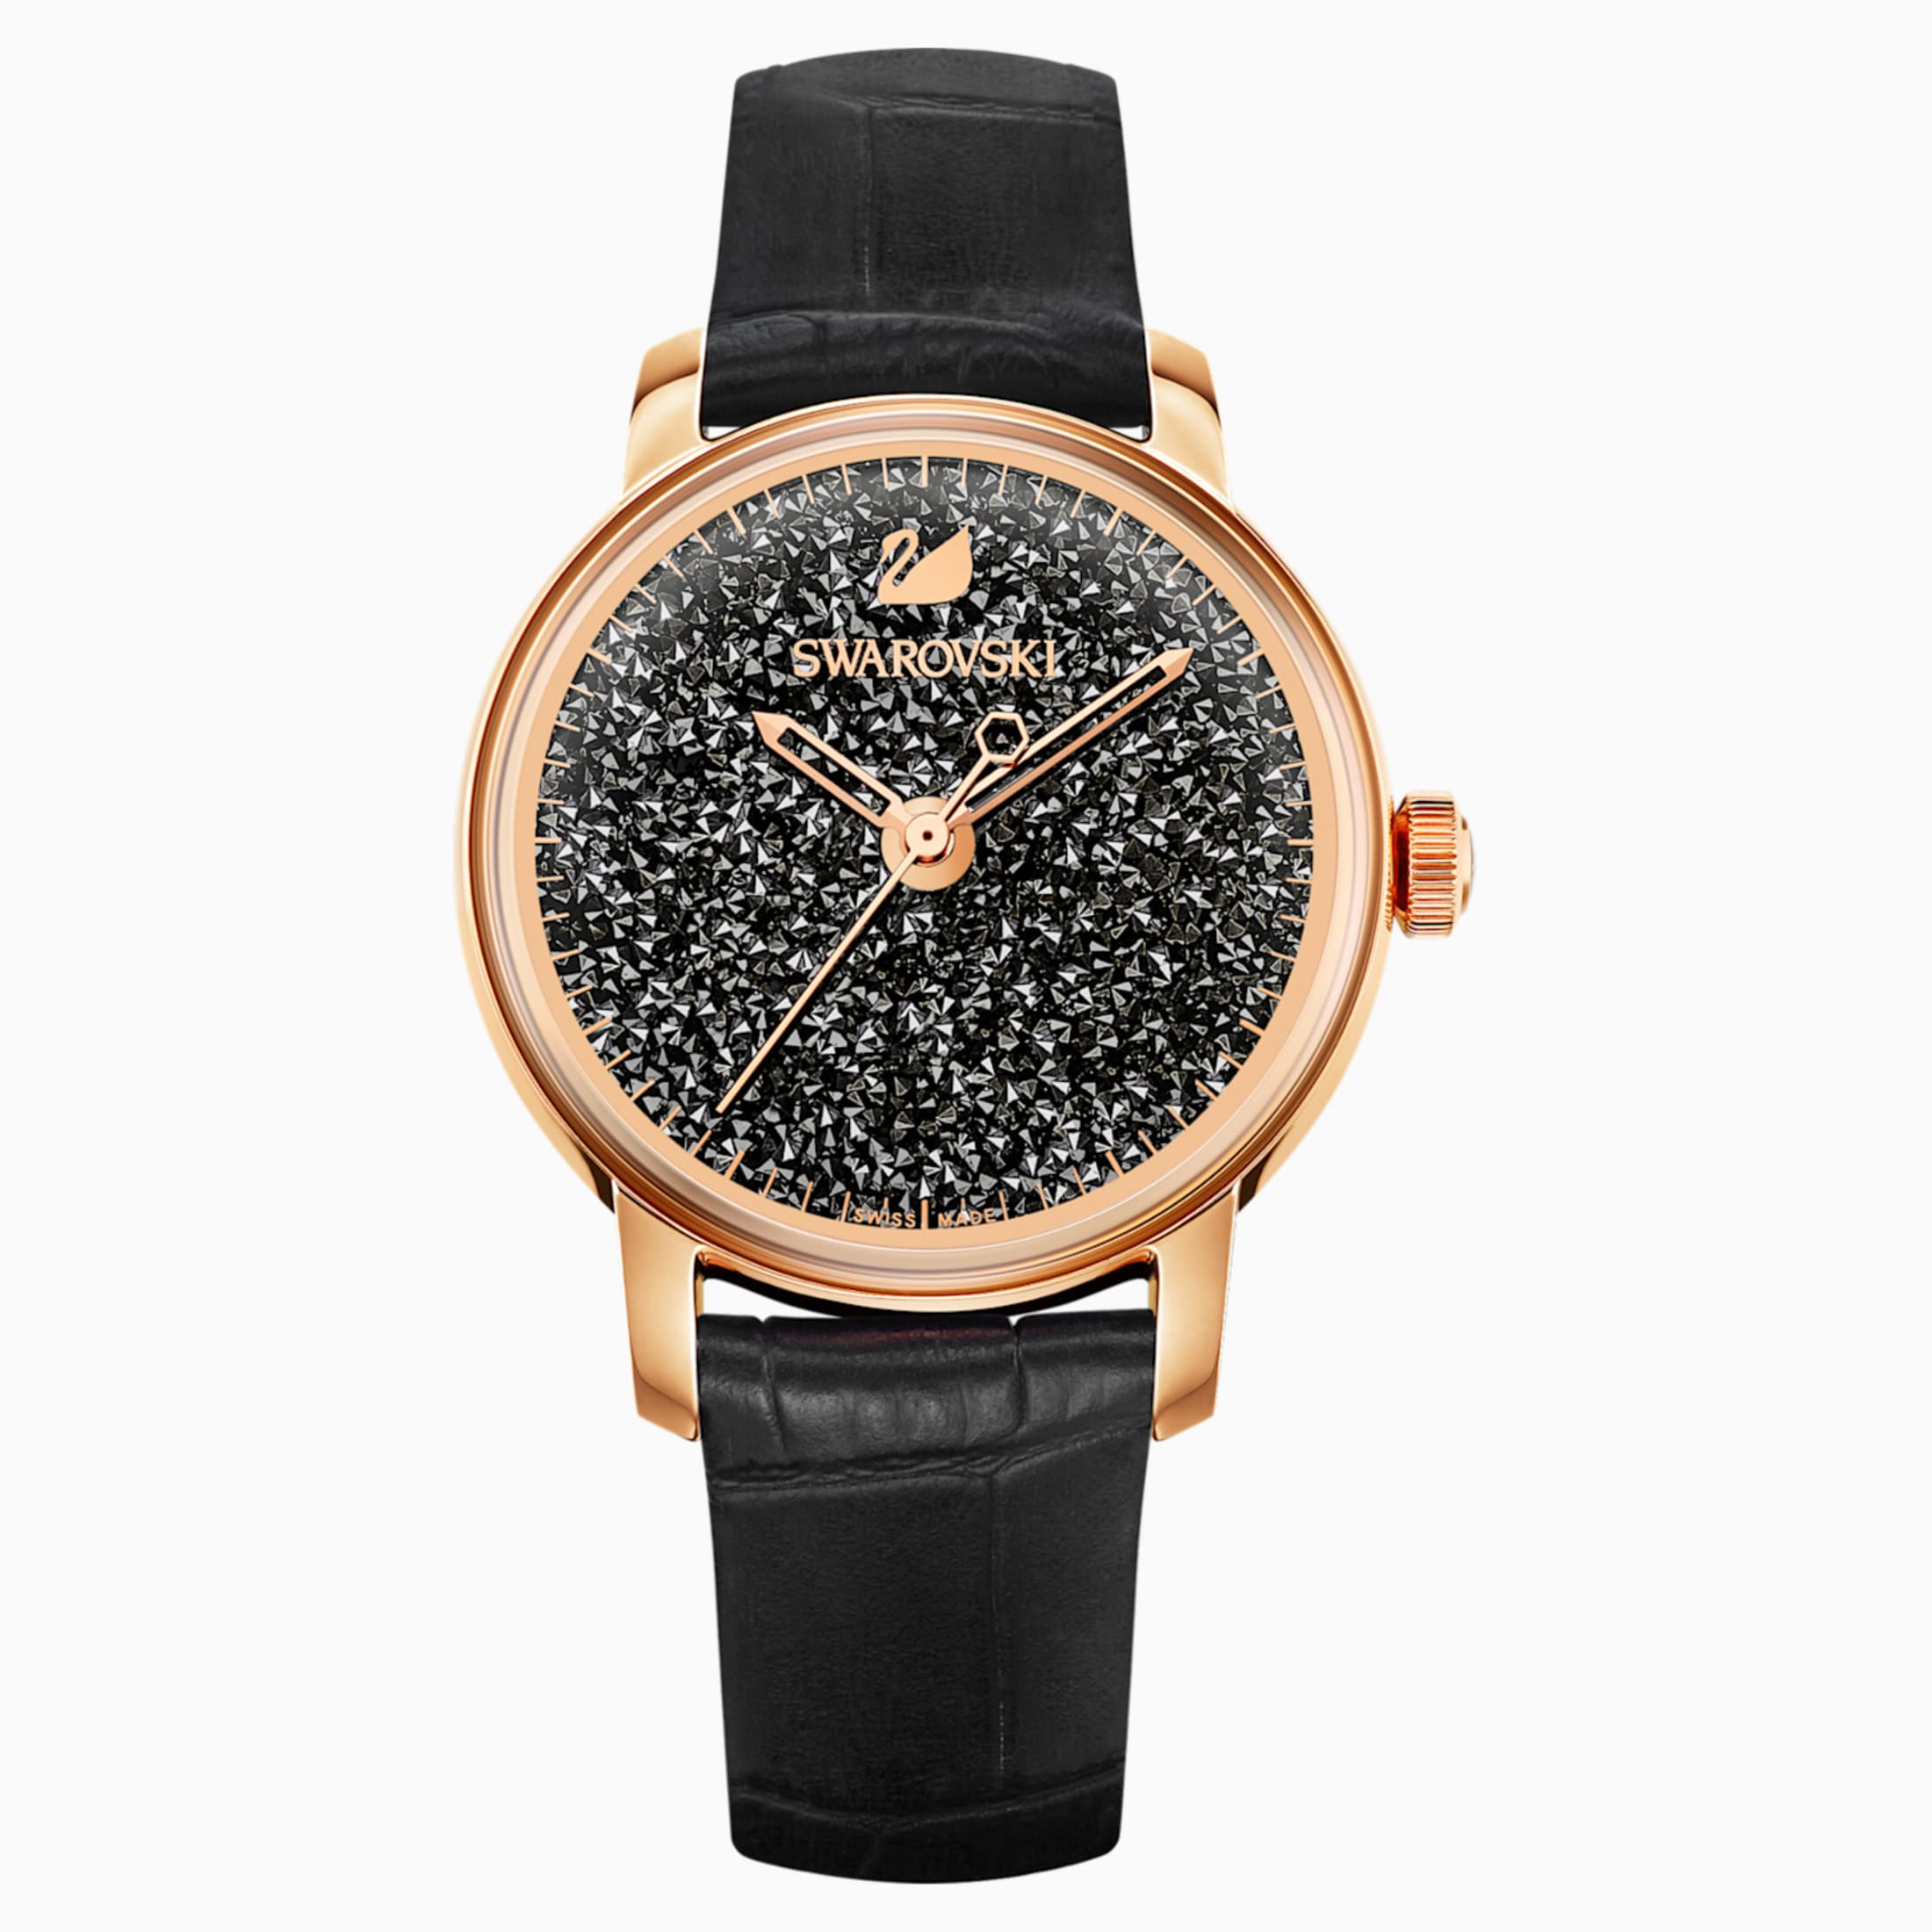 SWAROVSKI Crystalline Hours Watch, Leather strap, Rose-gold tone plated